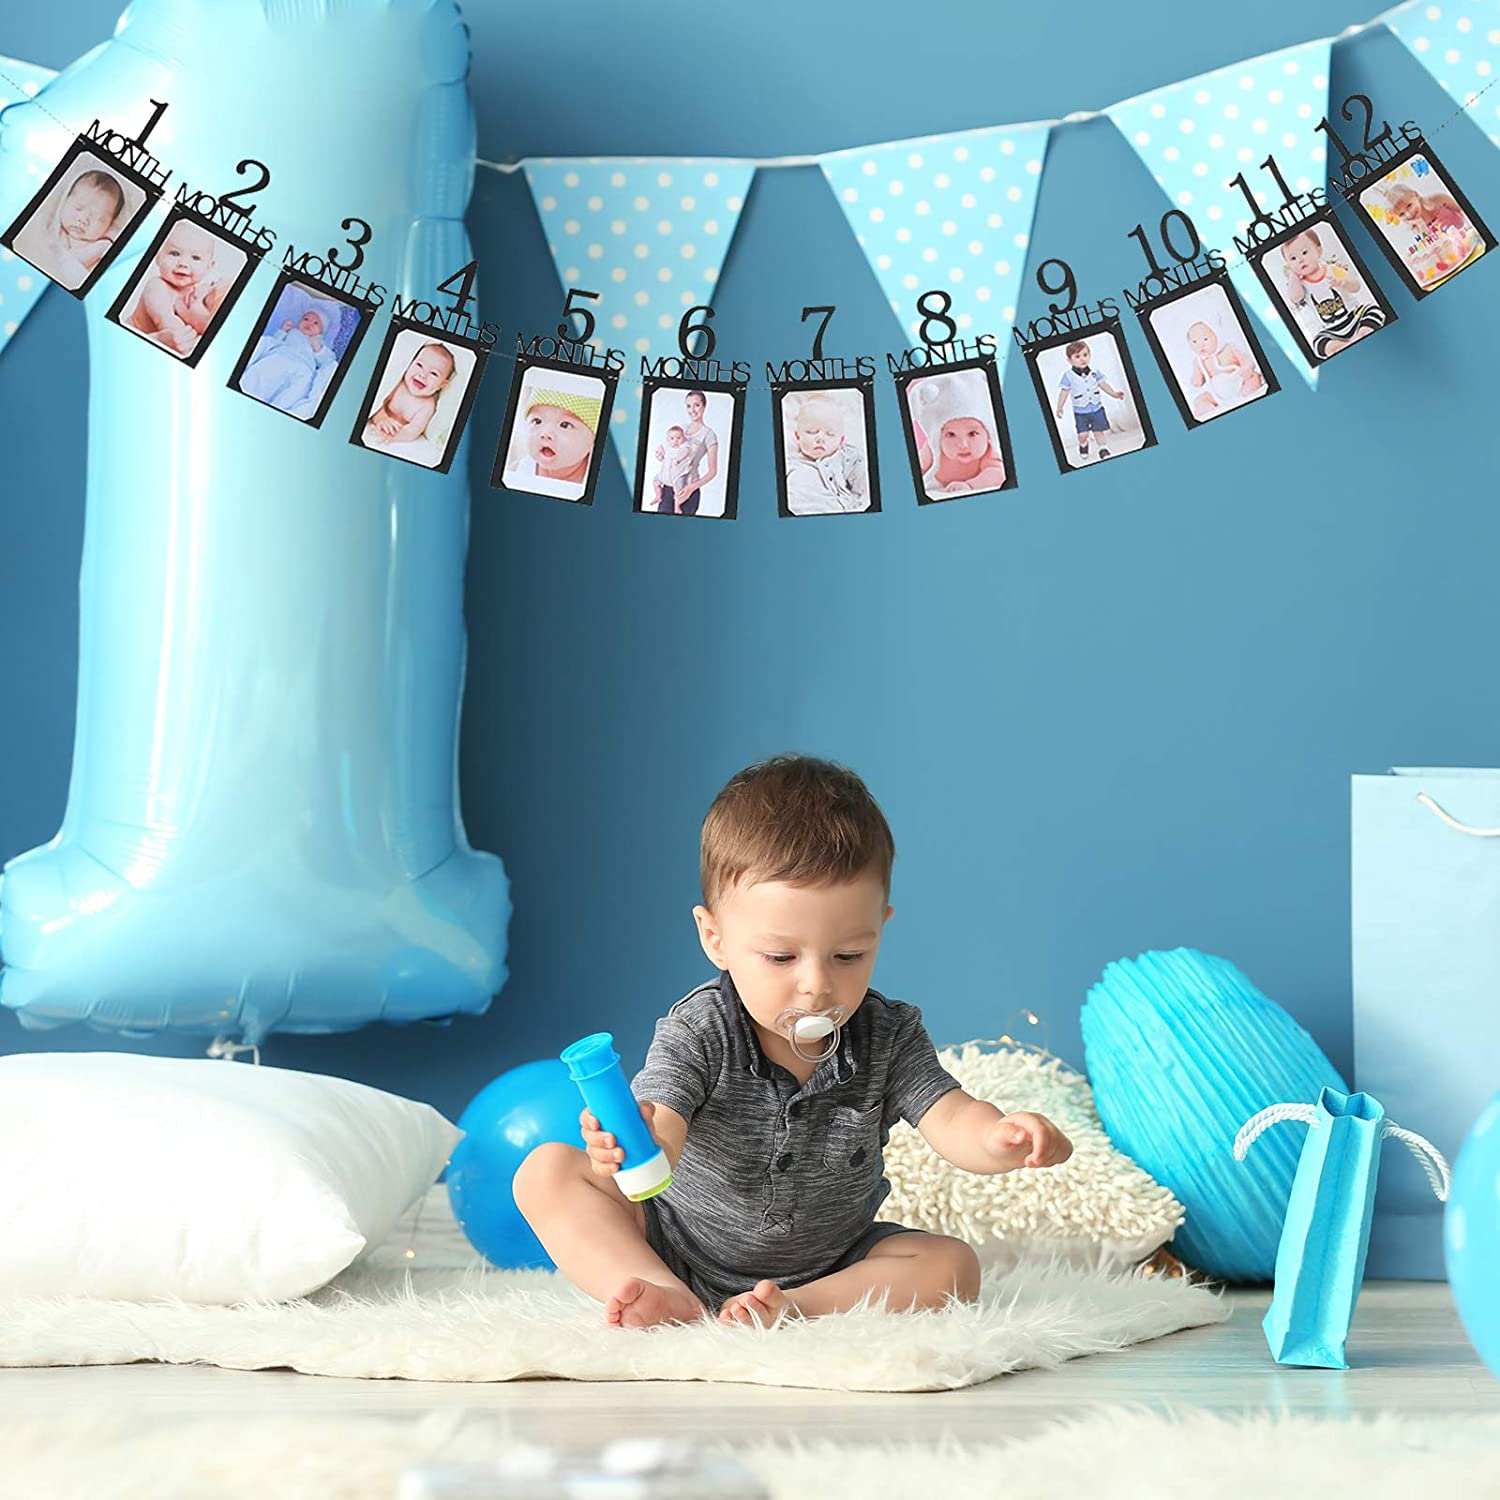 1st Birthday Banner for 1 Month to 12 Months Growth Record Monthly Milestone Black Photo Banner 12 Month Photo Banner for First Birthday Black Baby Boy Happy Birthday Flag